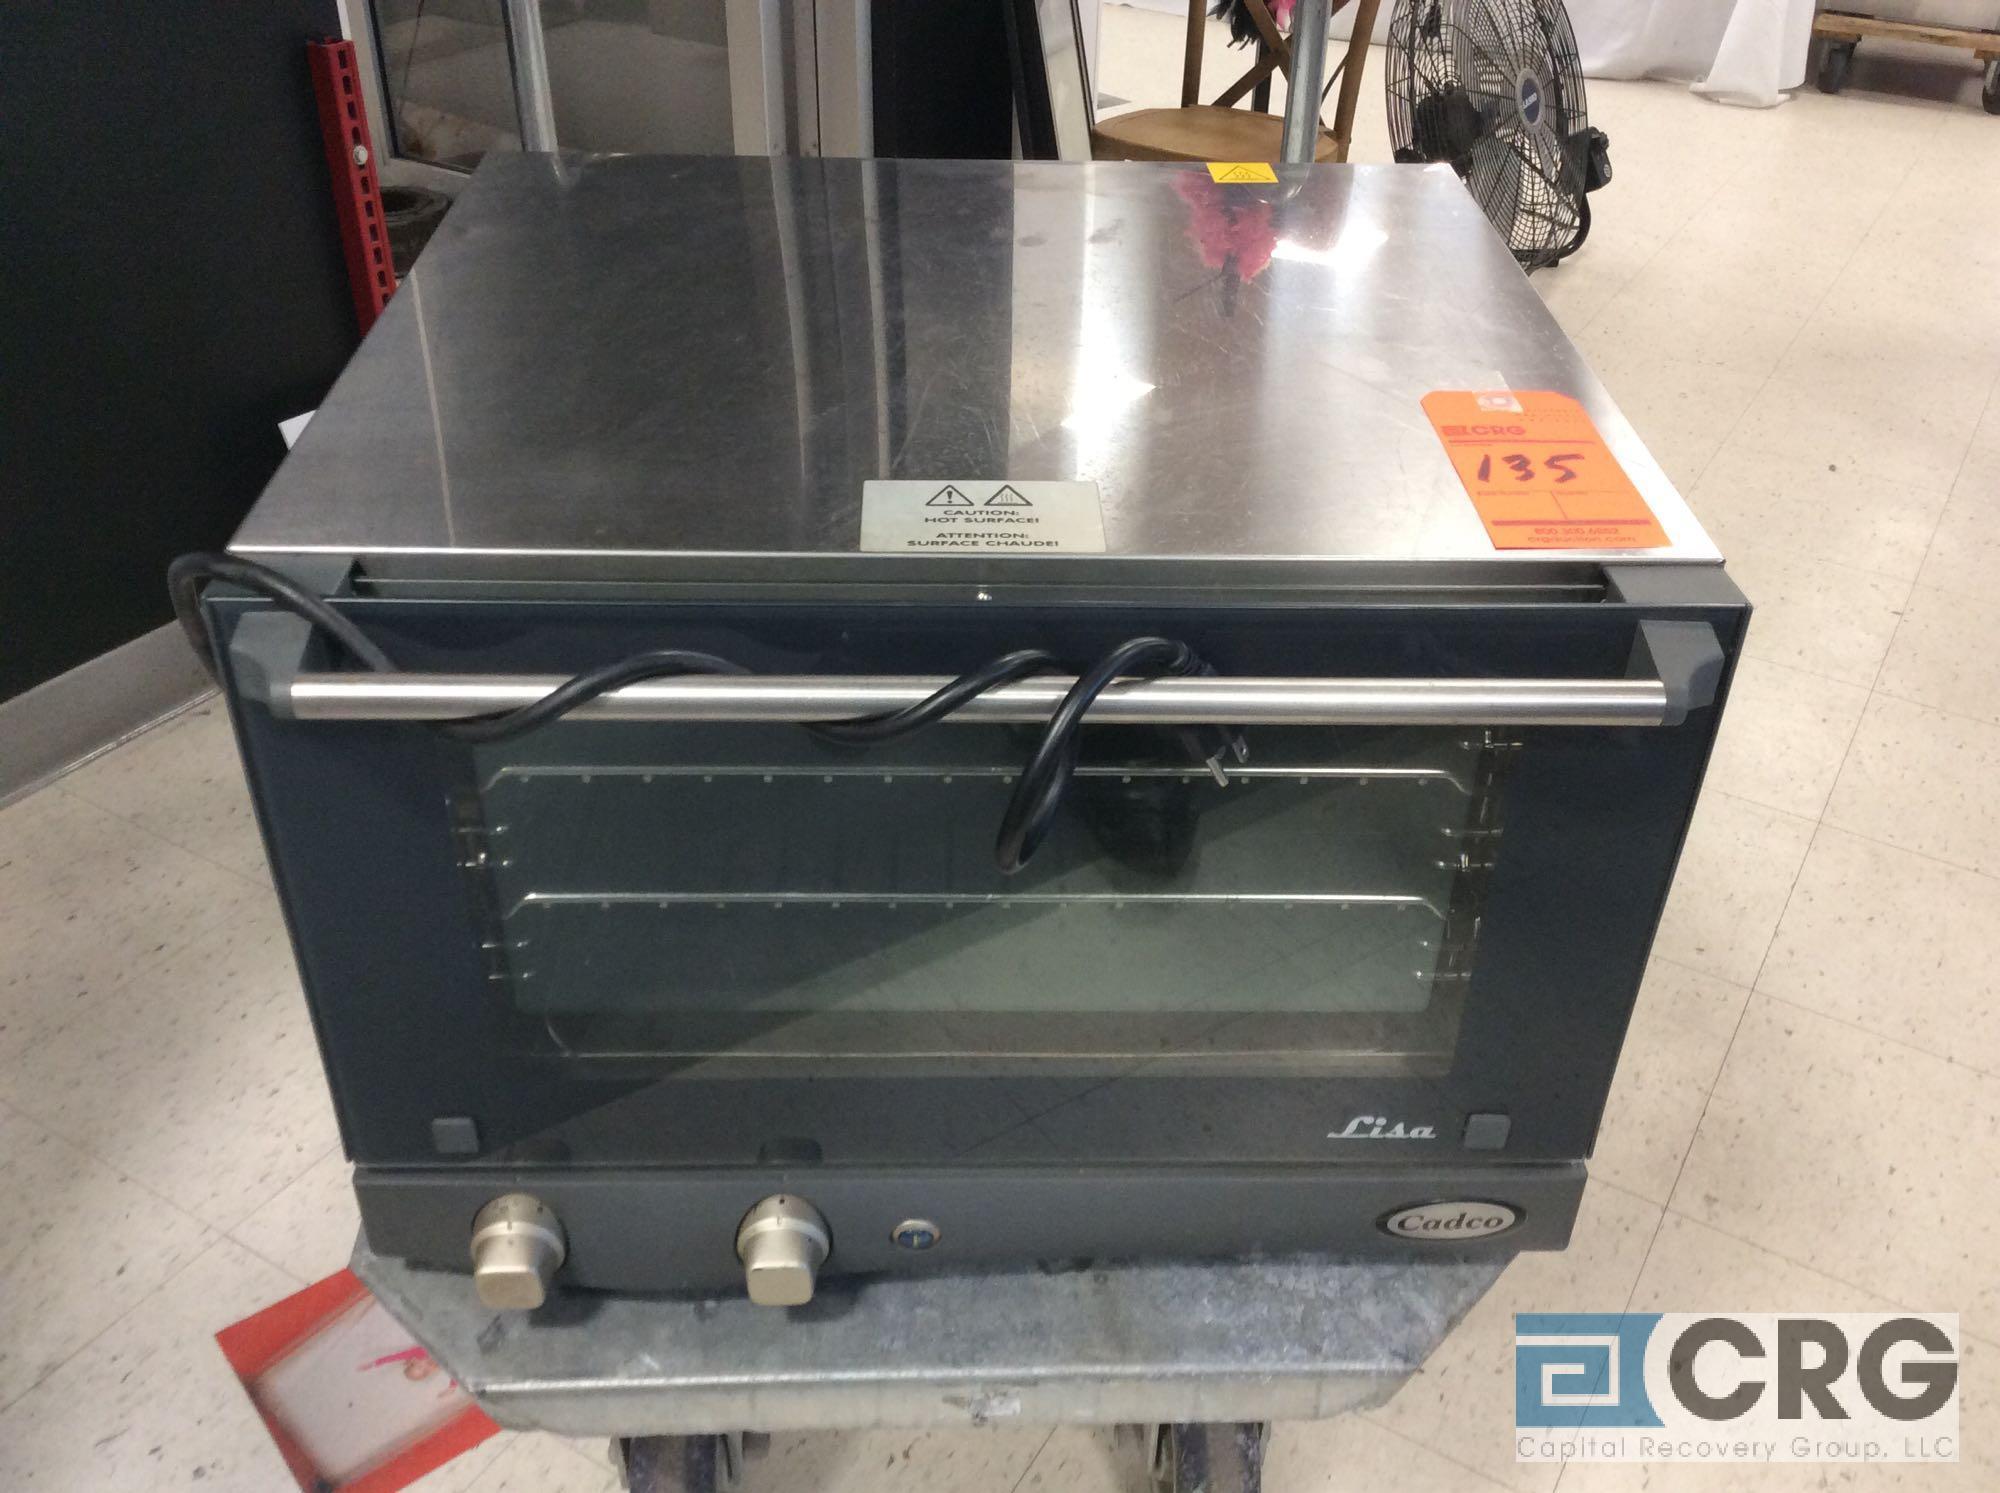 Cadco XAF013 electric convection oven, 1 phase